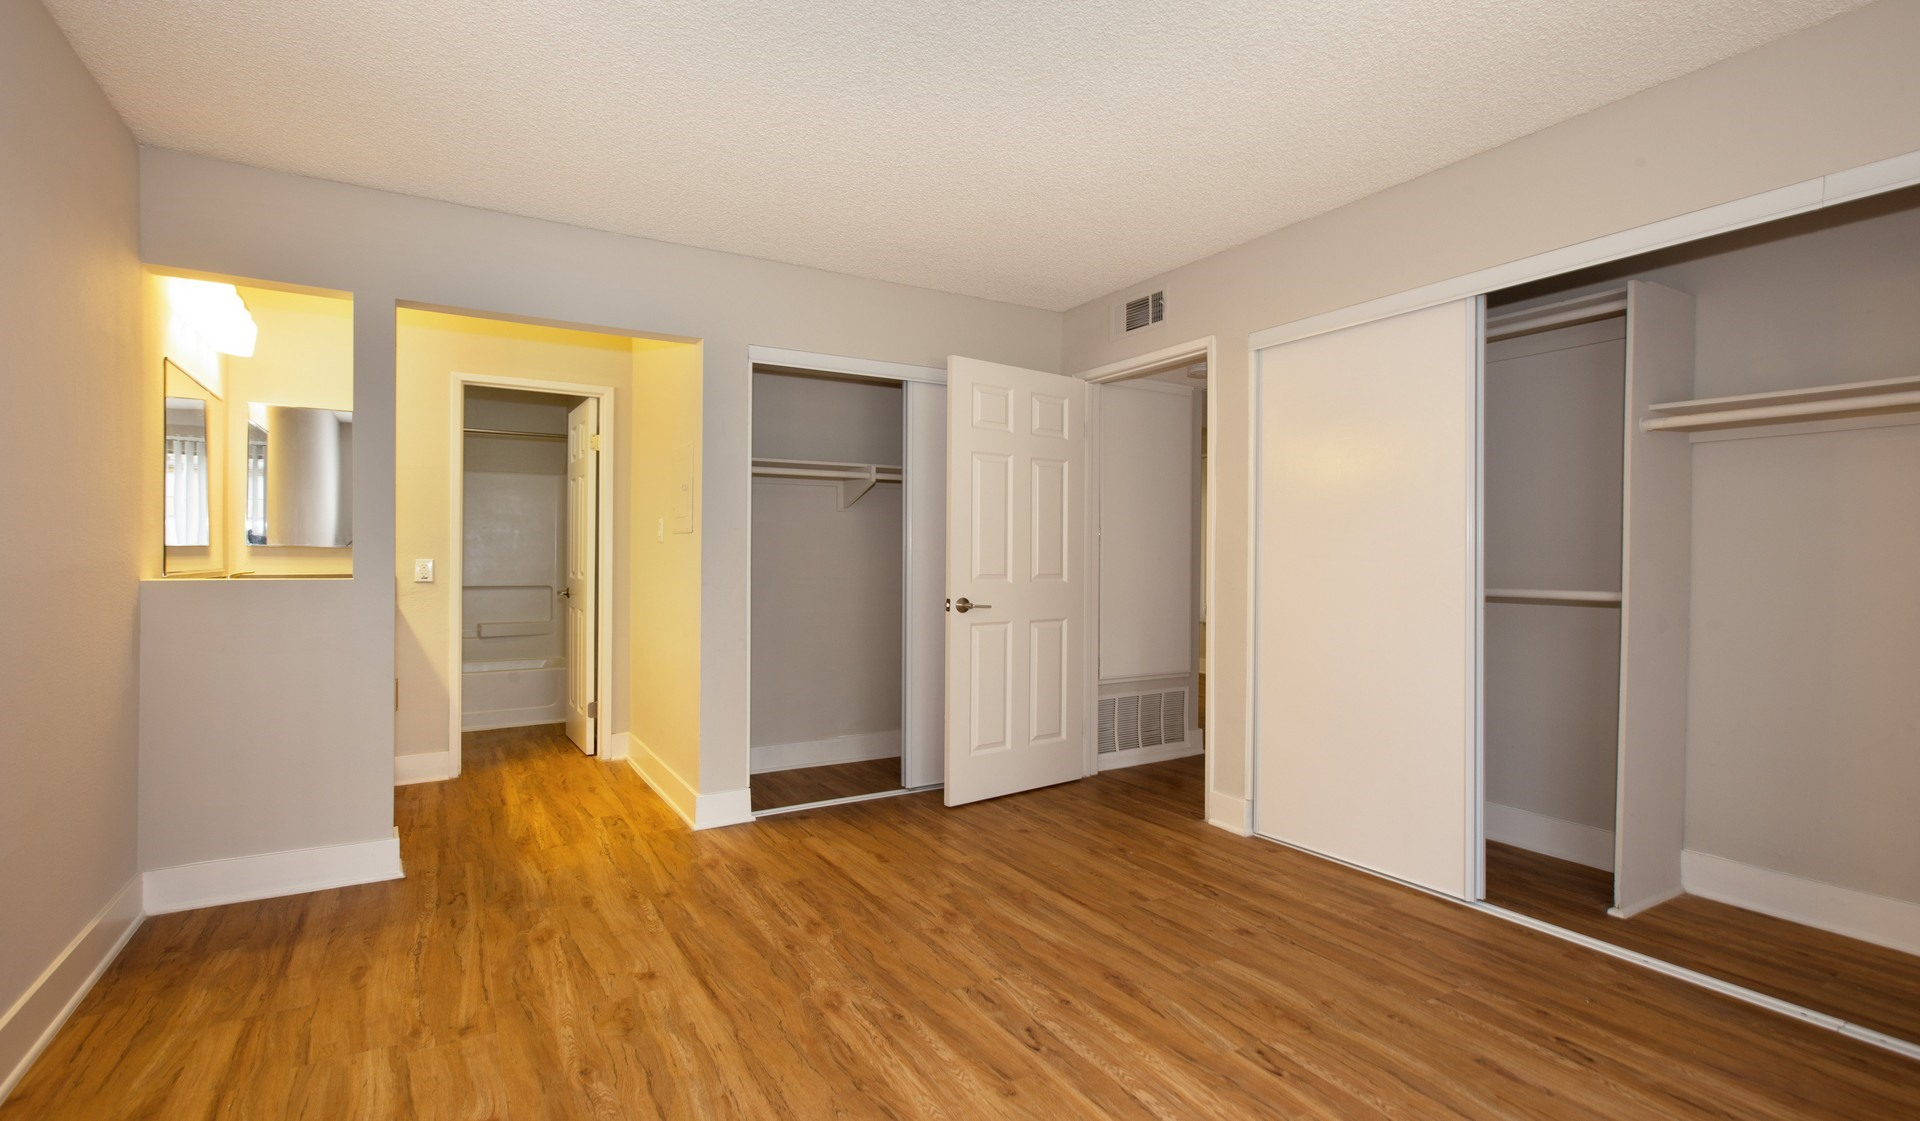 Indian Oaks Apartments - Closet Space - Simi Valley, CA